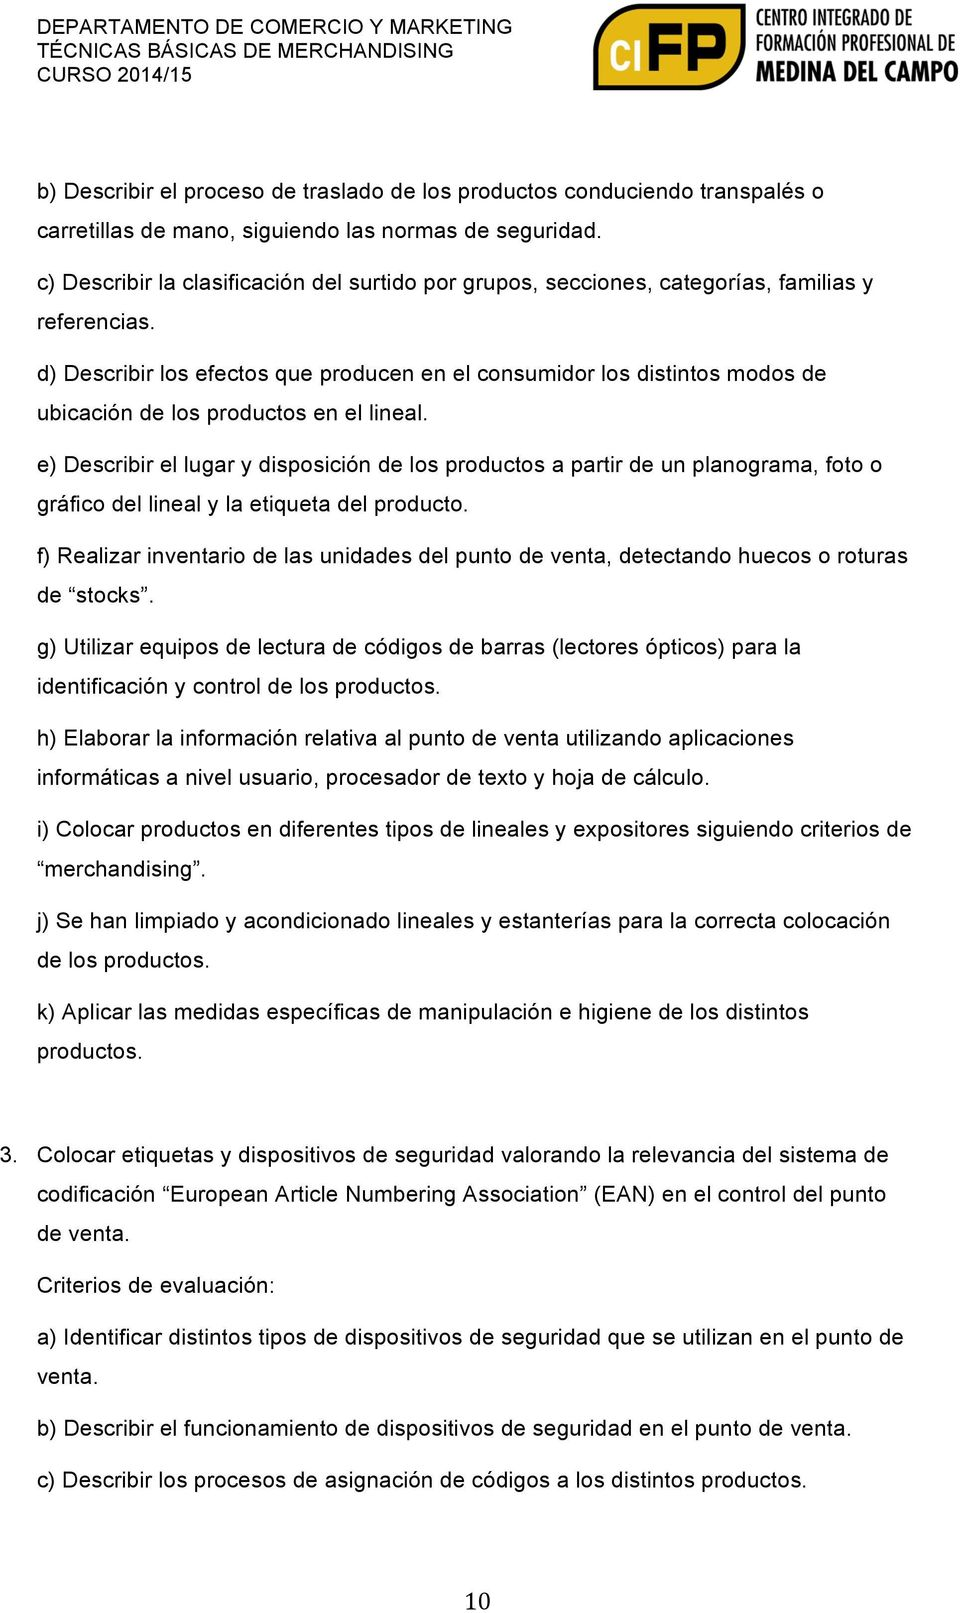 d) Describir ls efects que prducen en el cnsumidr ls distints mds de ubicación de ls prducts en el lineal.